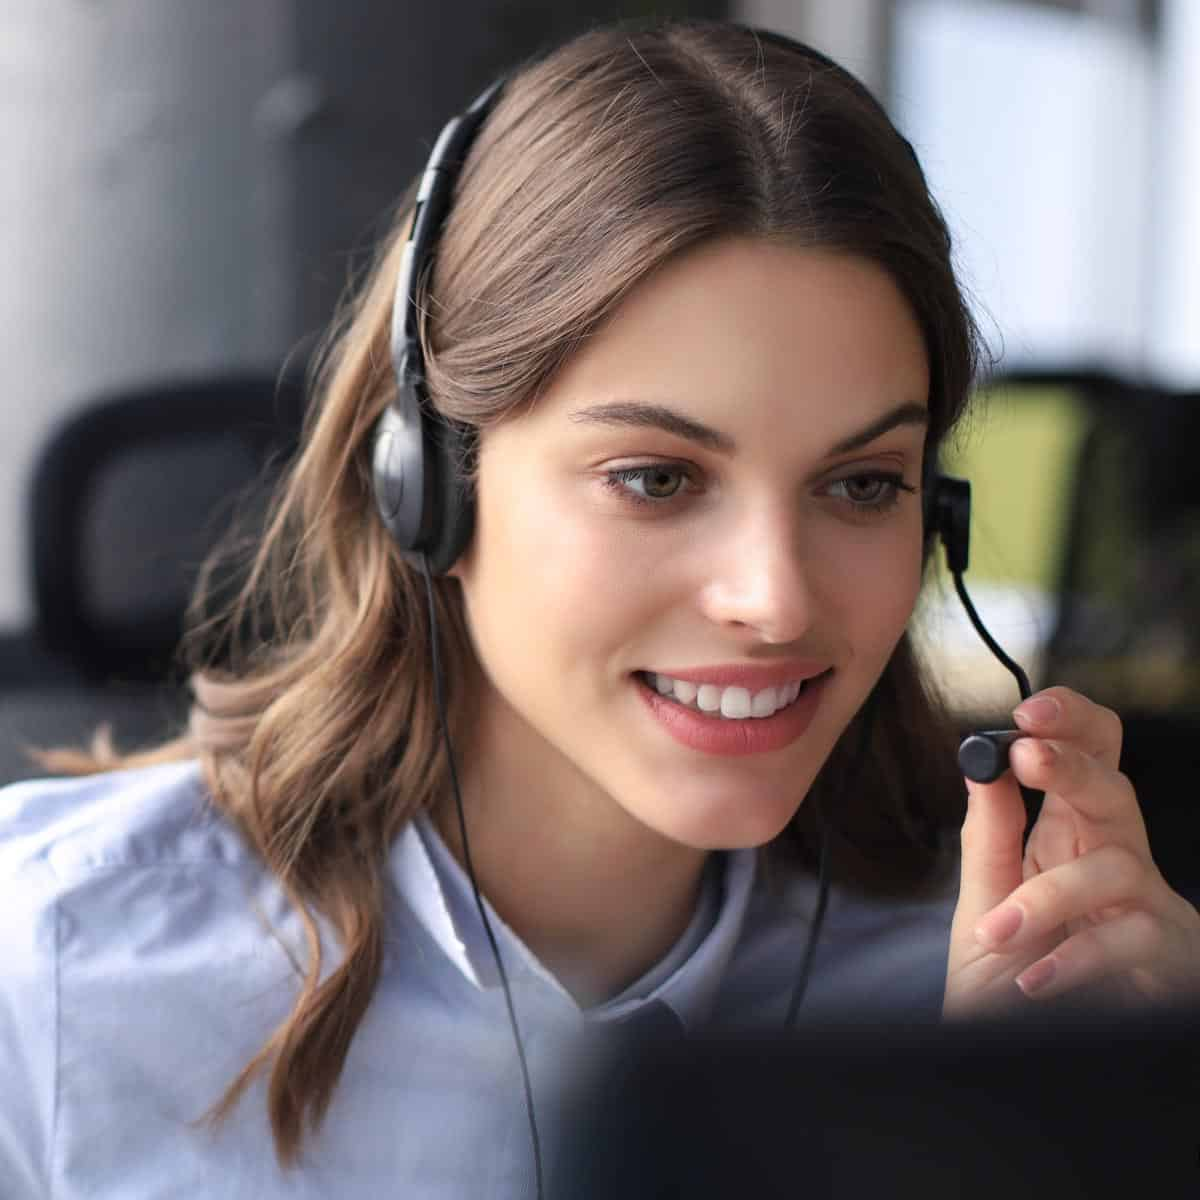 A customer service representation women wearing her headphone and making an outbound call